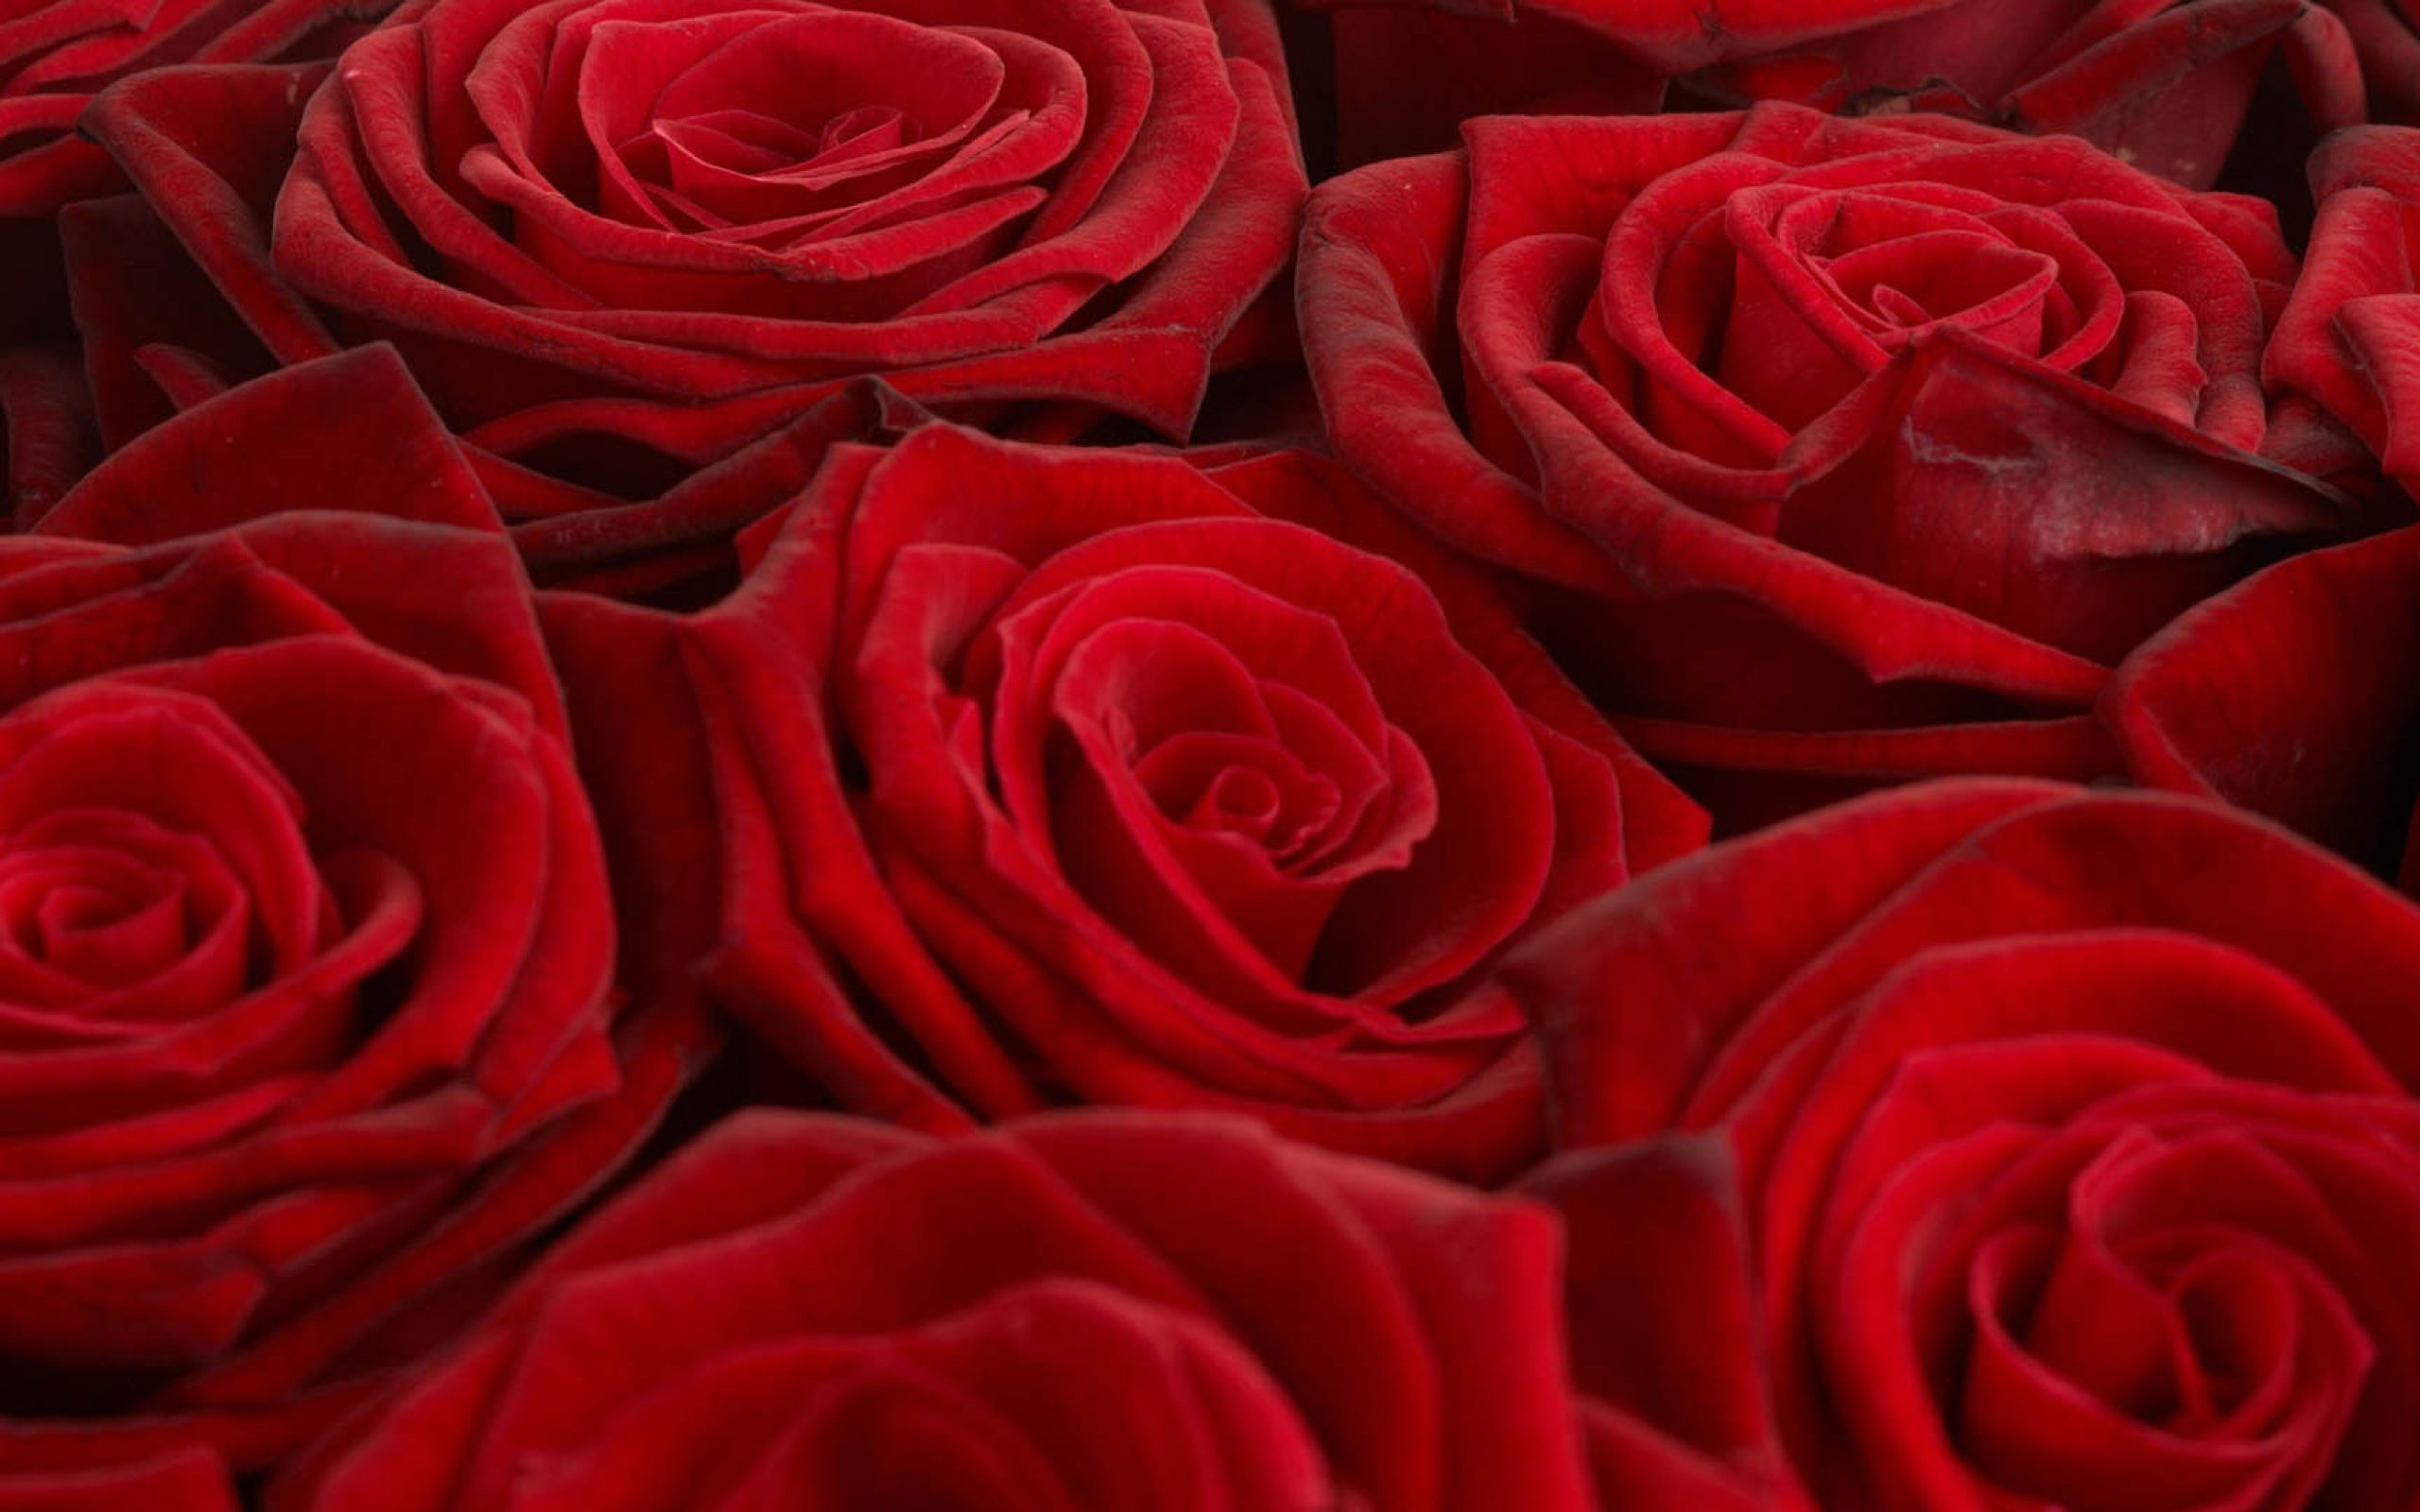 Rose Flowers Wallpapers Flowers Ideas | HD Wallpapers | Pinterest ...